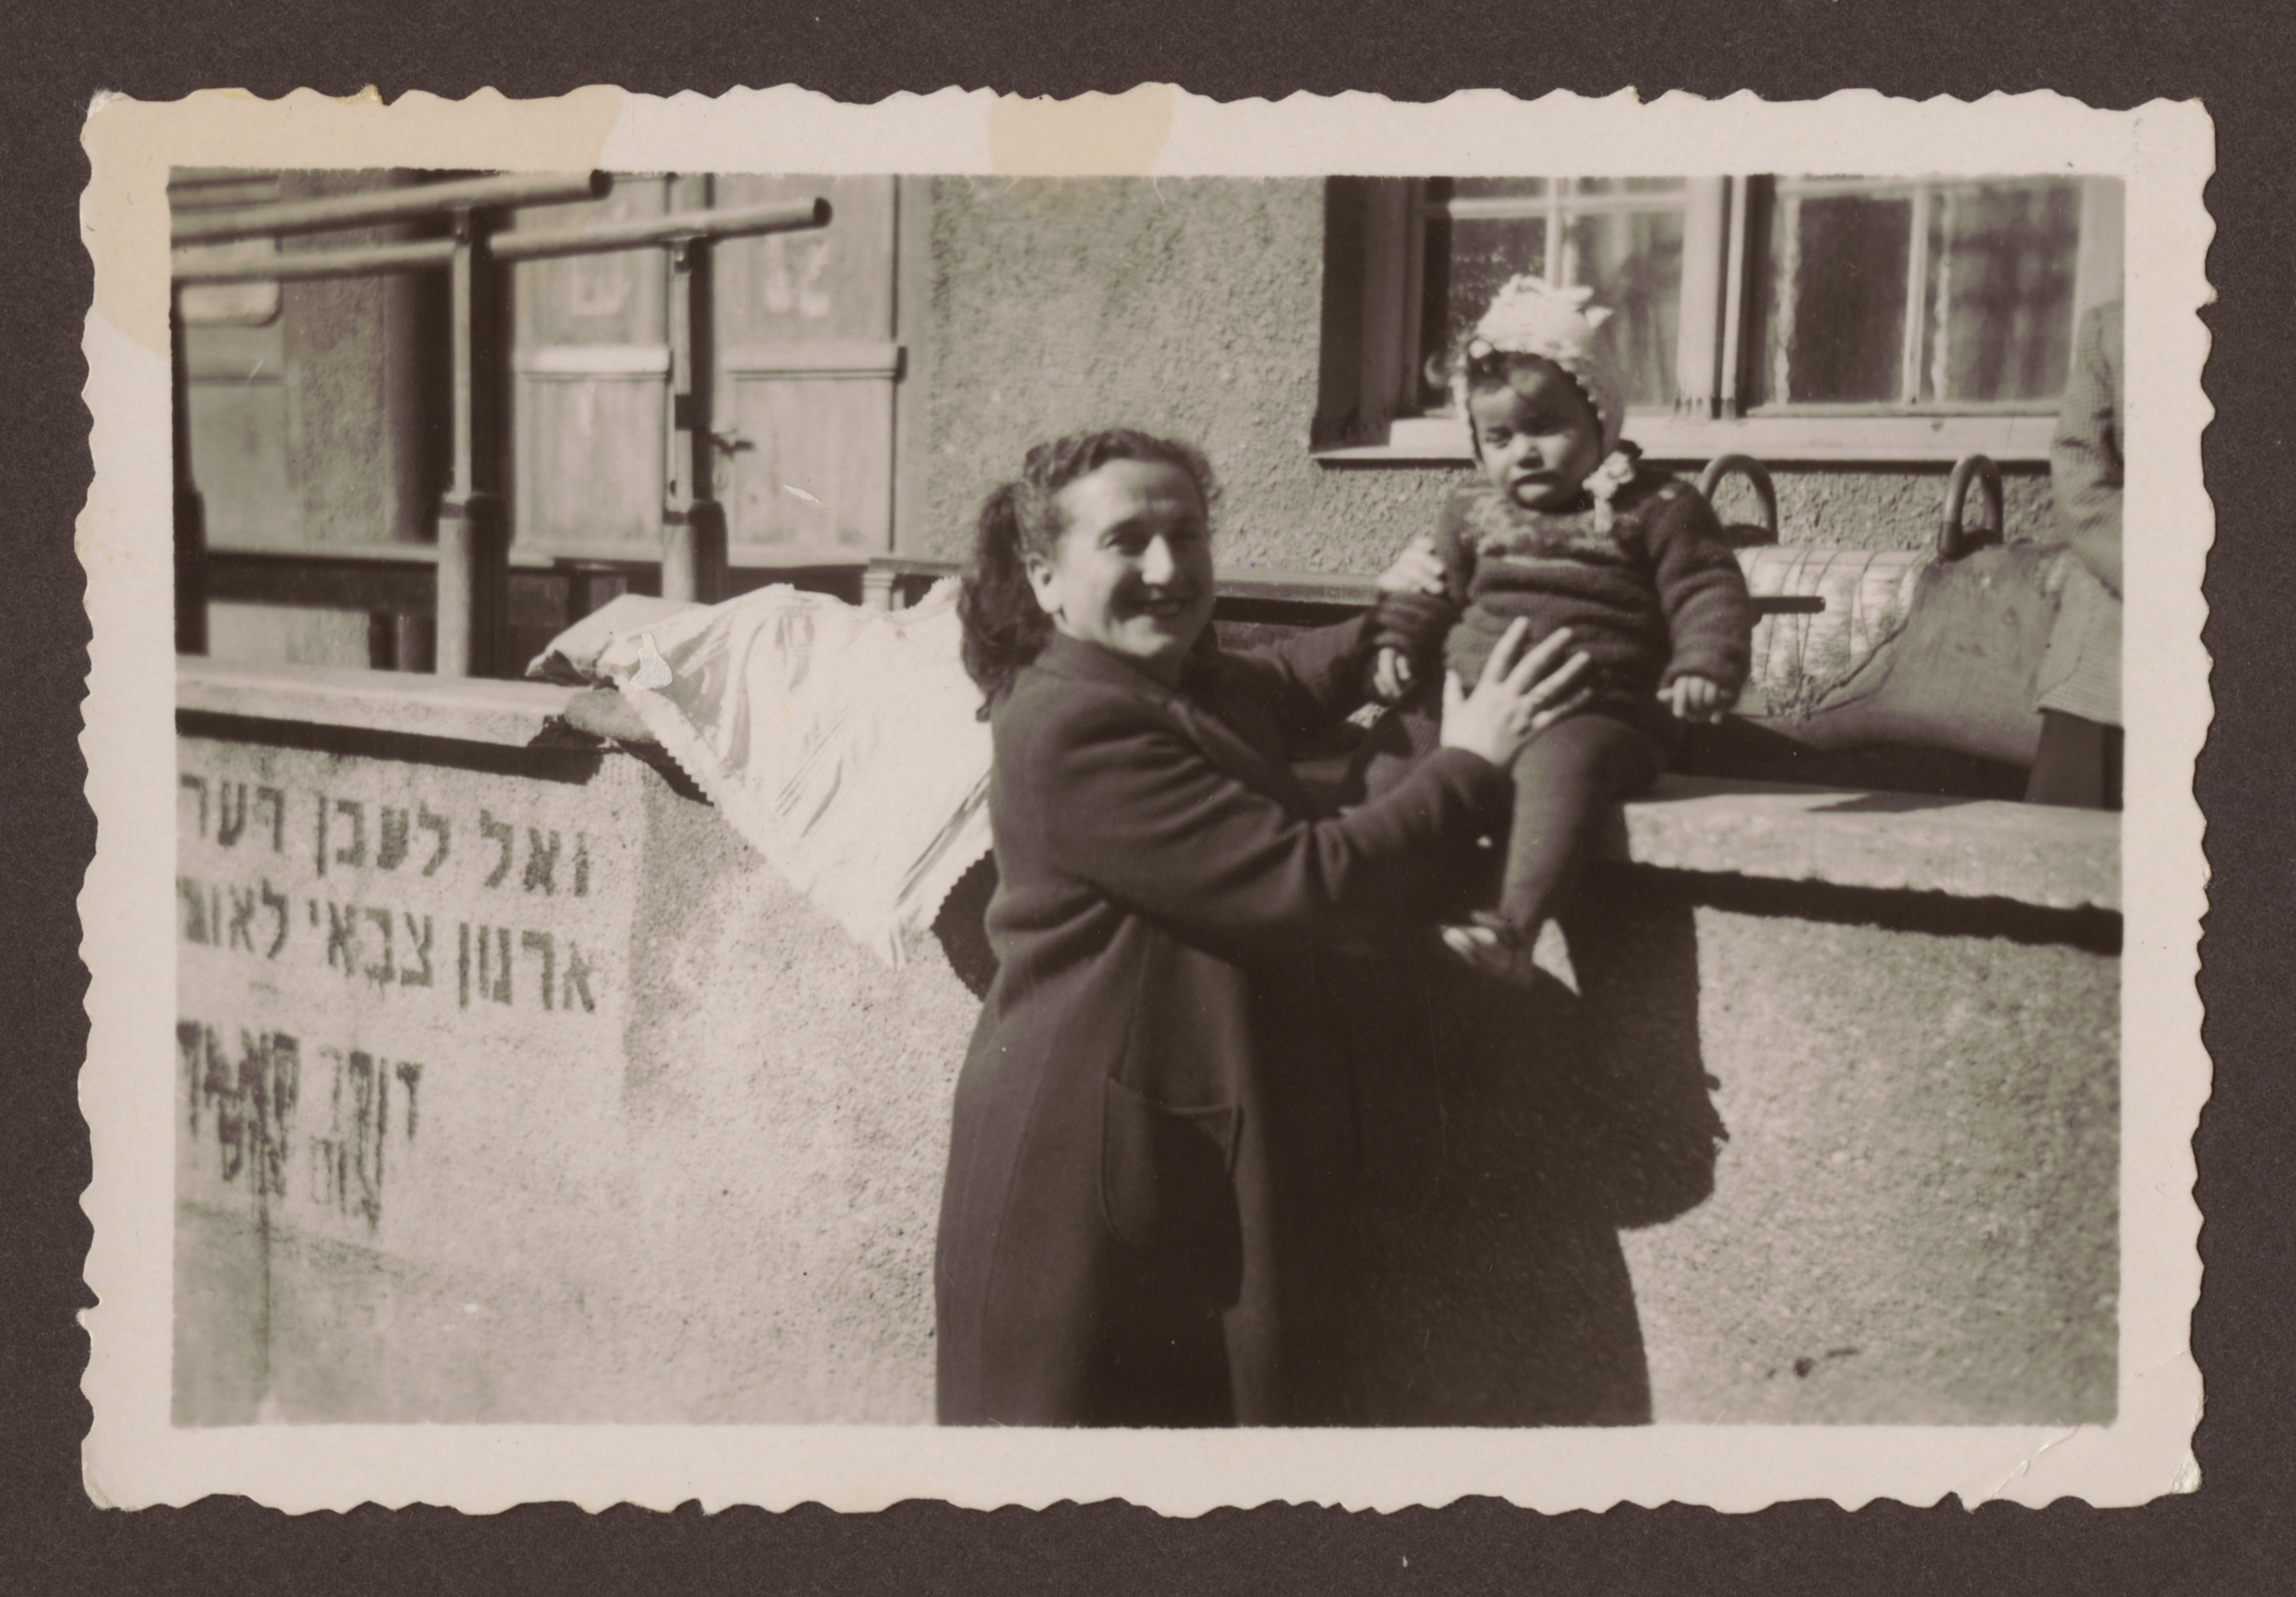 Manya Kirstein supports her baby daughter Sara who is sitting on a ledge [probably in the Weilheim displaced persons camp].  Pictured on the wall is a poster [perhaps advertising a rally in favor of partition of Palestine].